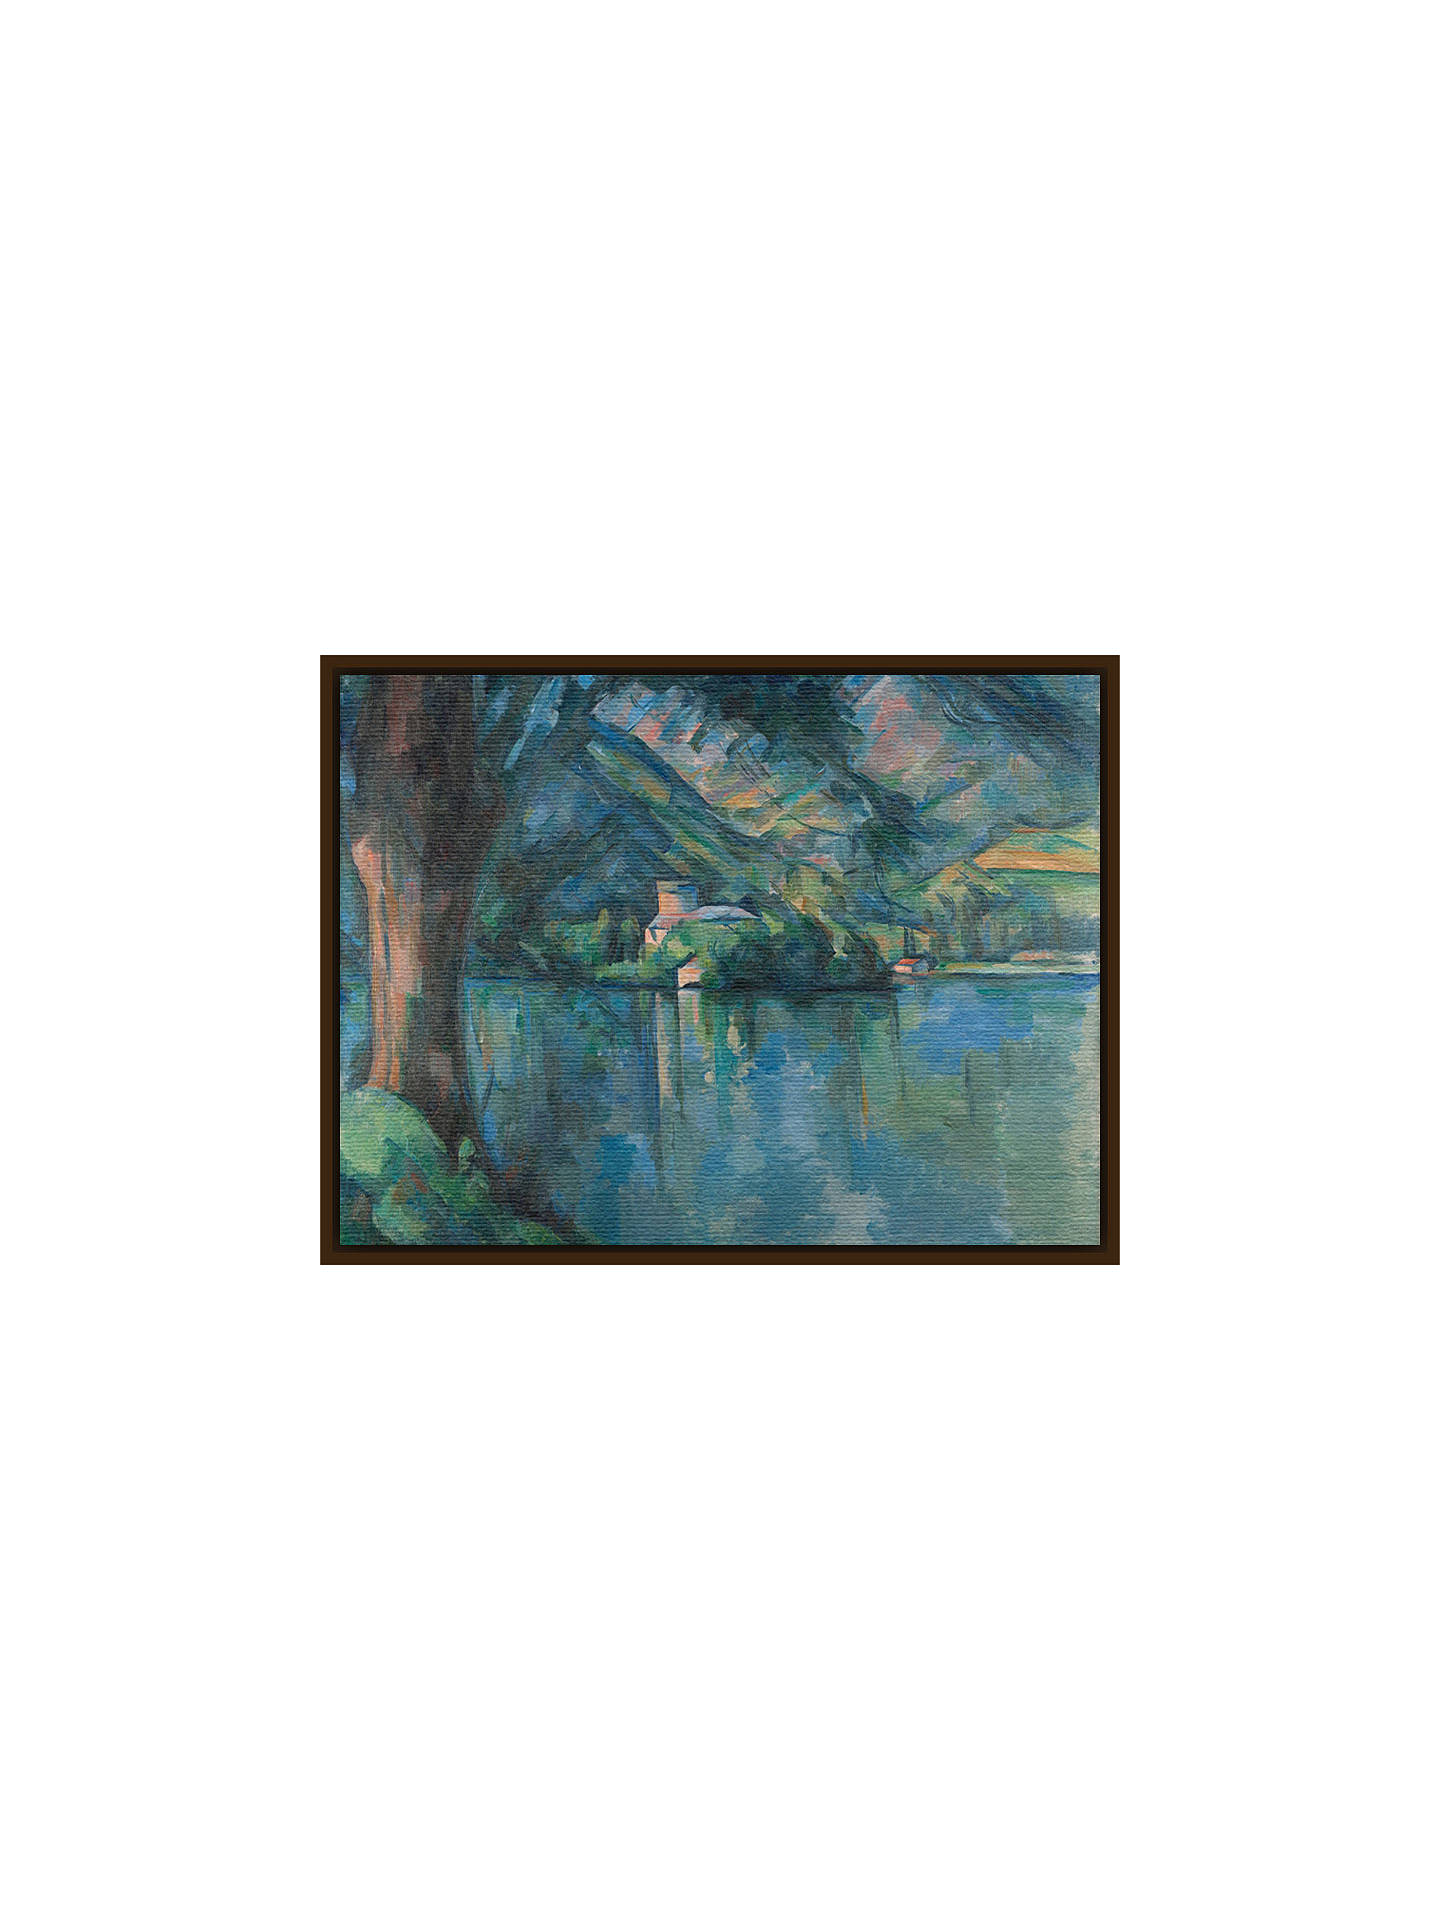 Buy The Courtauld Gallery, Paul Cézanne - Lac d'Annecy 1896 Print, Dark Brown Framed Canvas, 40 x 50cm Online at johnlewis.com